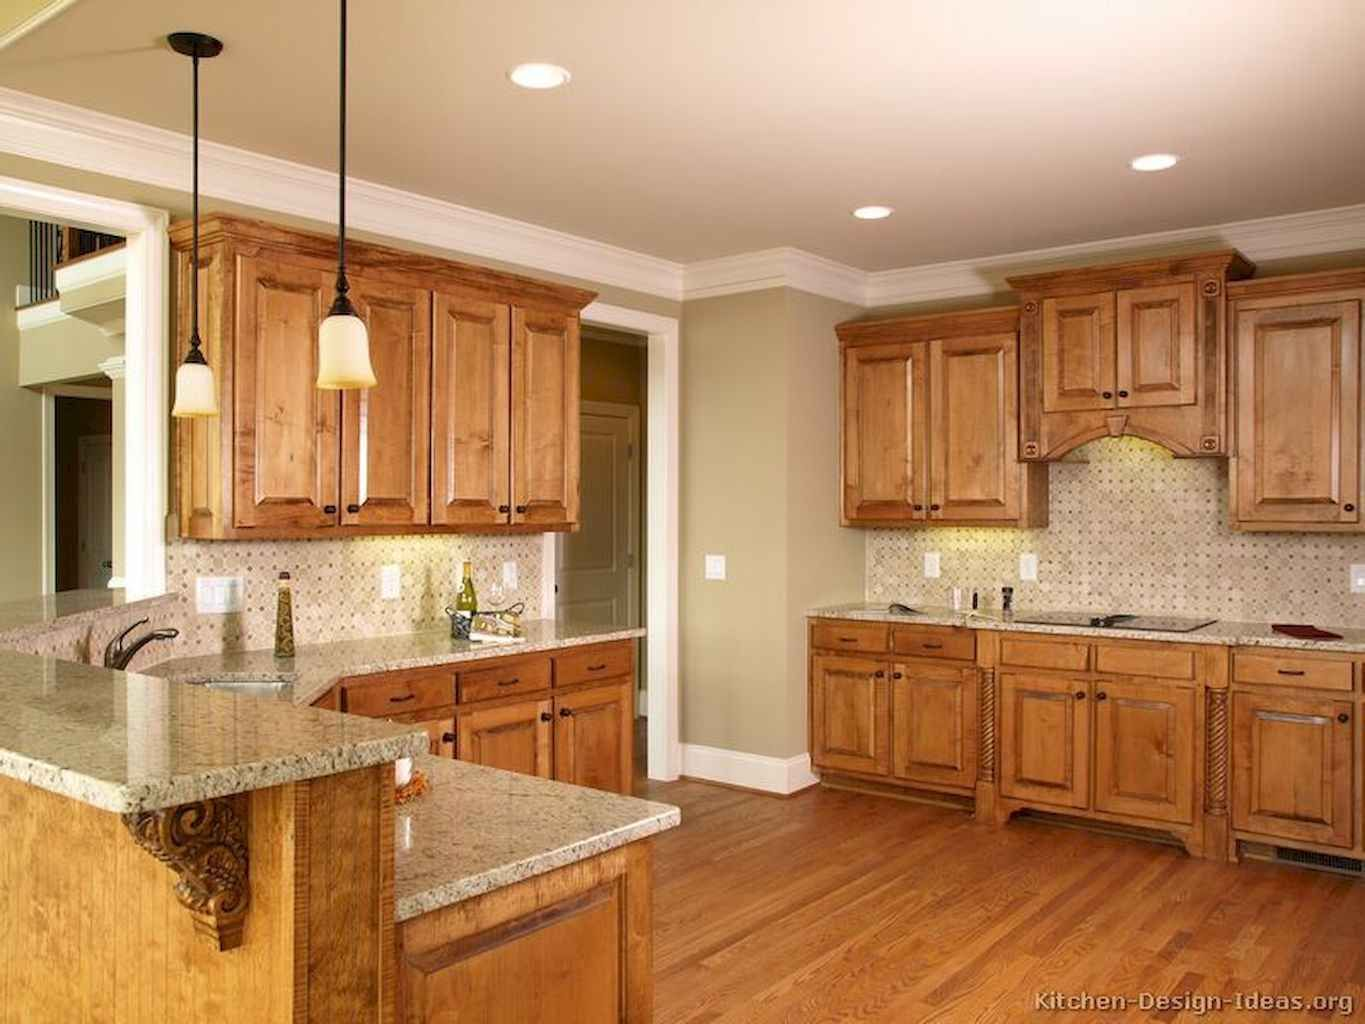 100 Best Oak Kitchen Cabinets Ideas Decoration For Farmhouse Style 93 Tuscan Kitchen Design Tuscan Kitchen Oak Kitchen Cabinets